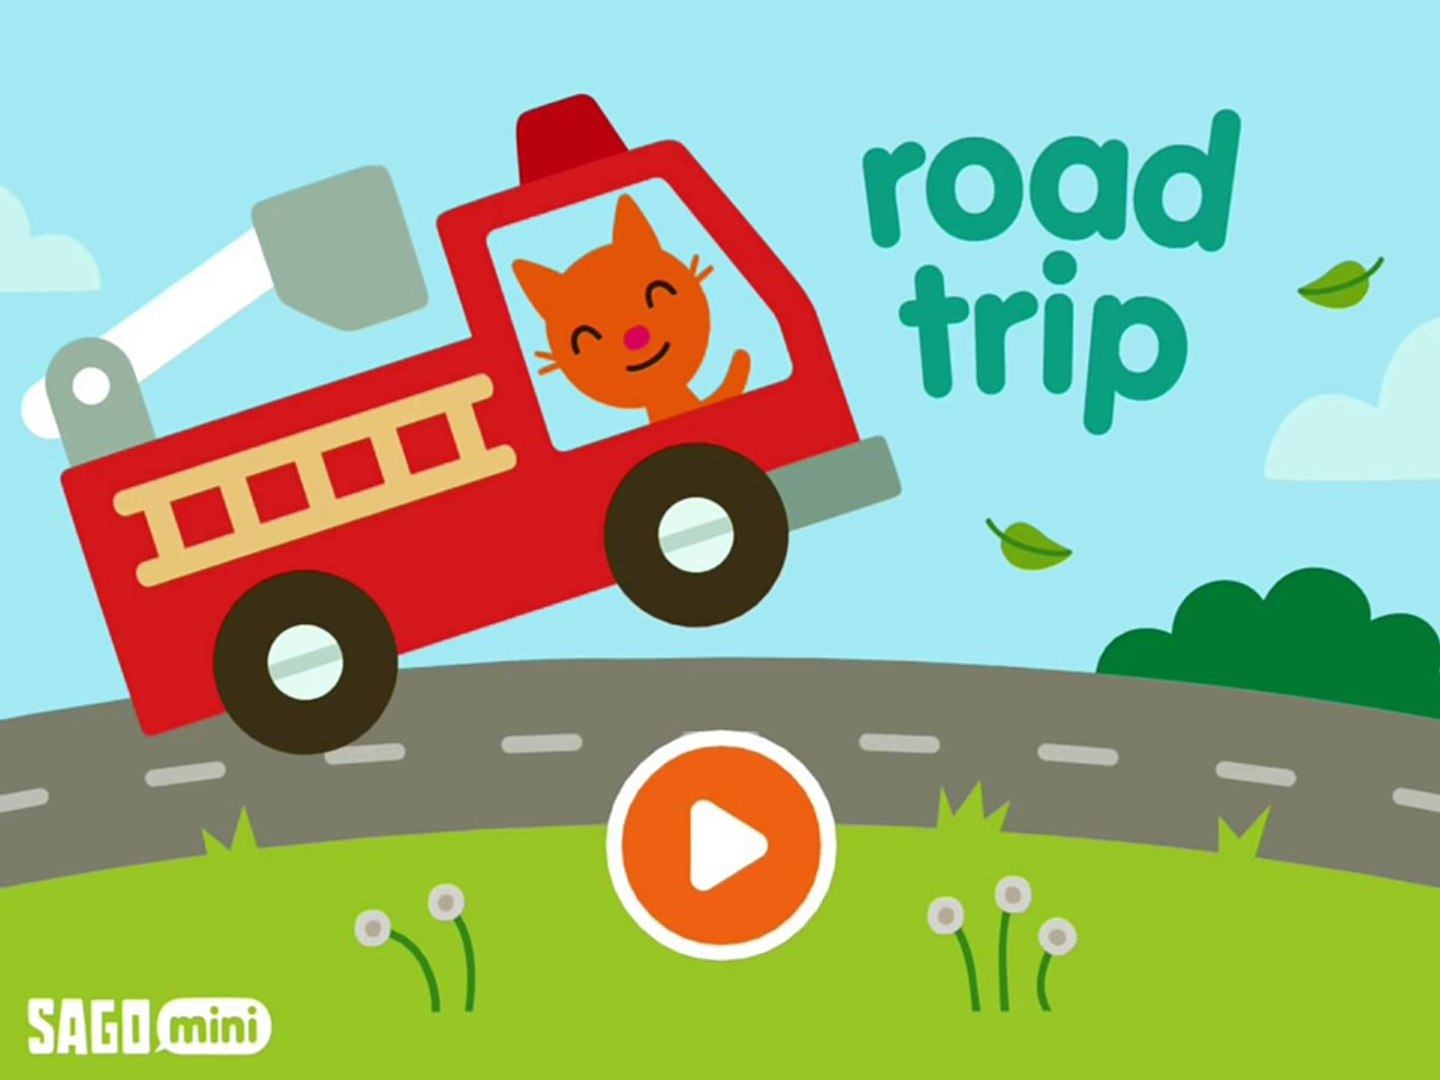 Sago Mini Road Trip | Train | Саго Мини В Путь-Дорогу - Childrens cartoon game